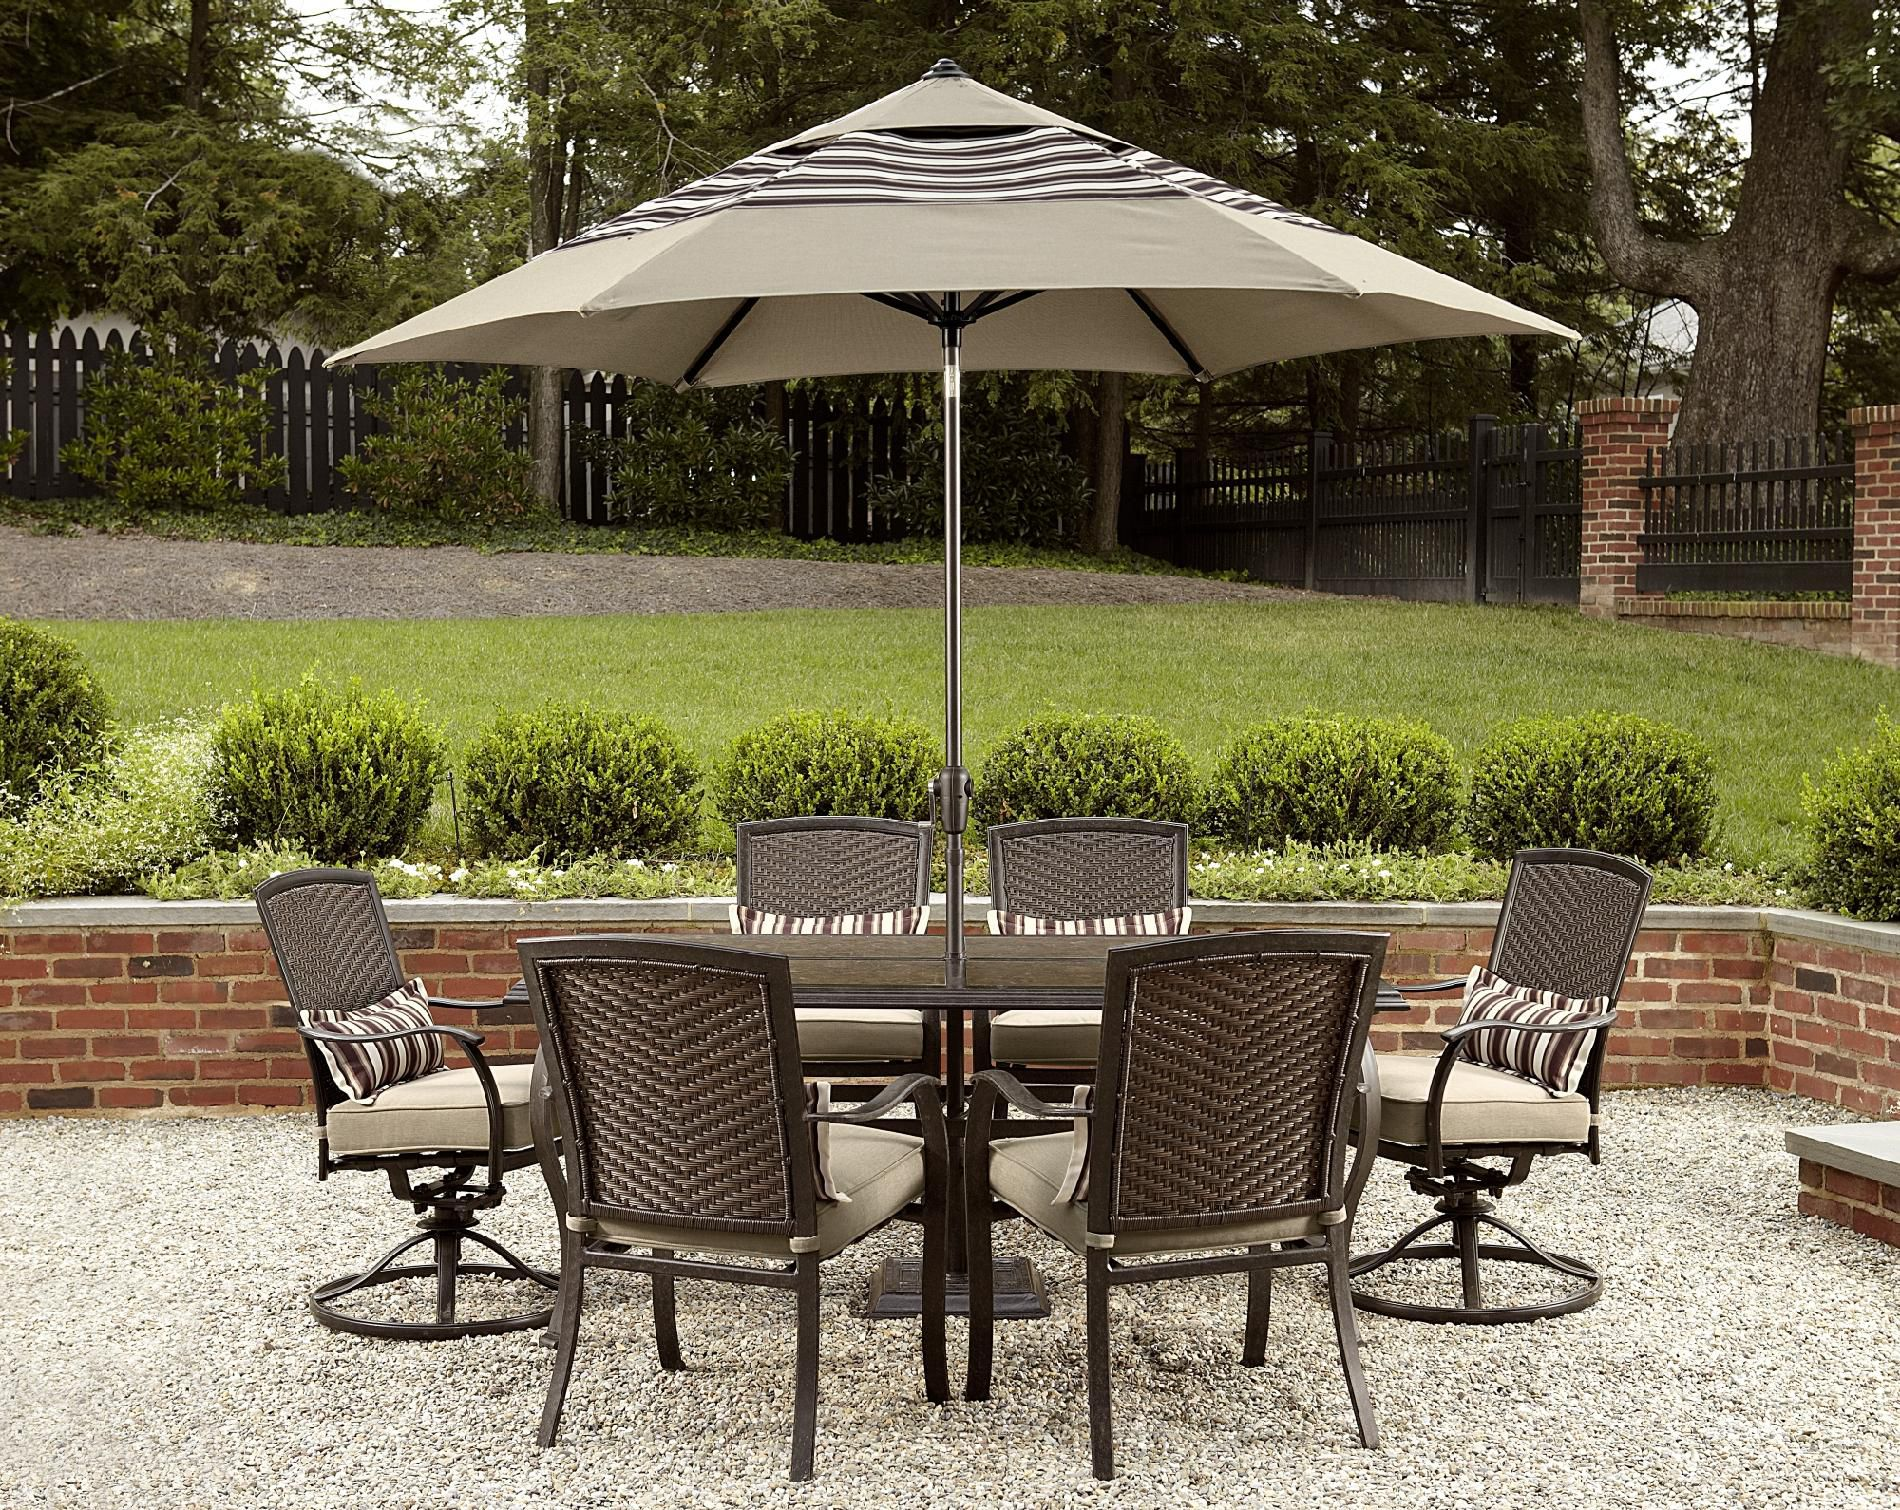 La-Z-Boy Outdoor McKenna 9ft Round Umbrella